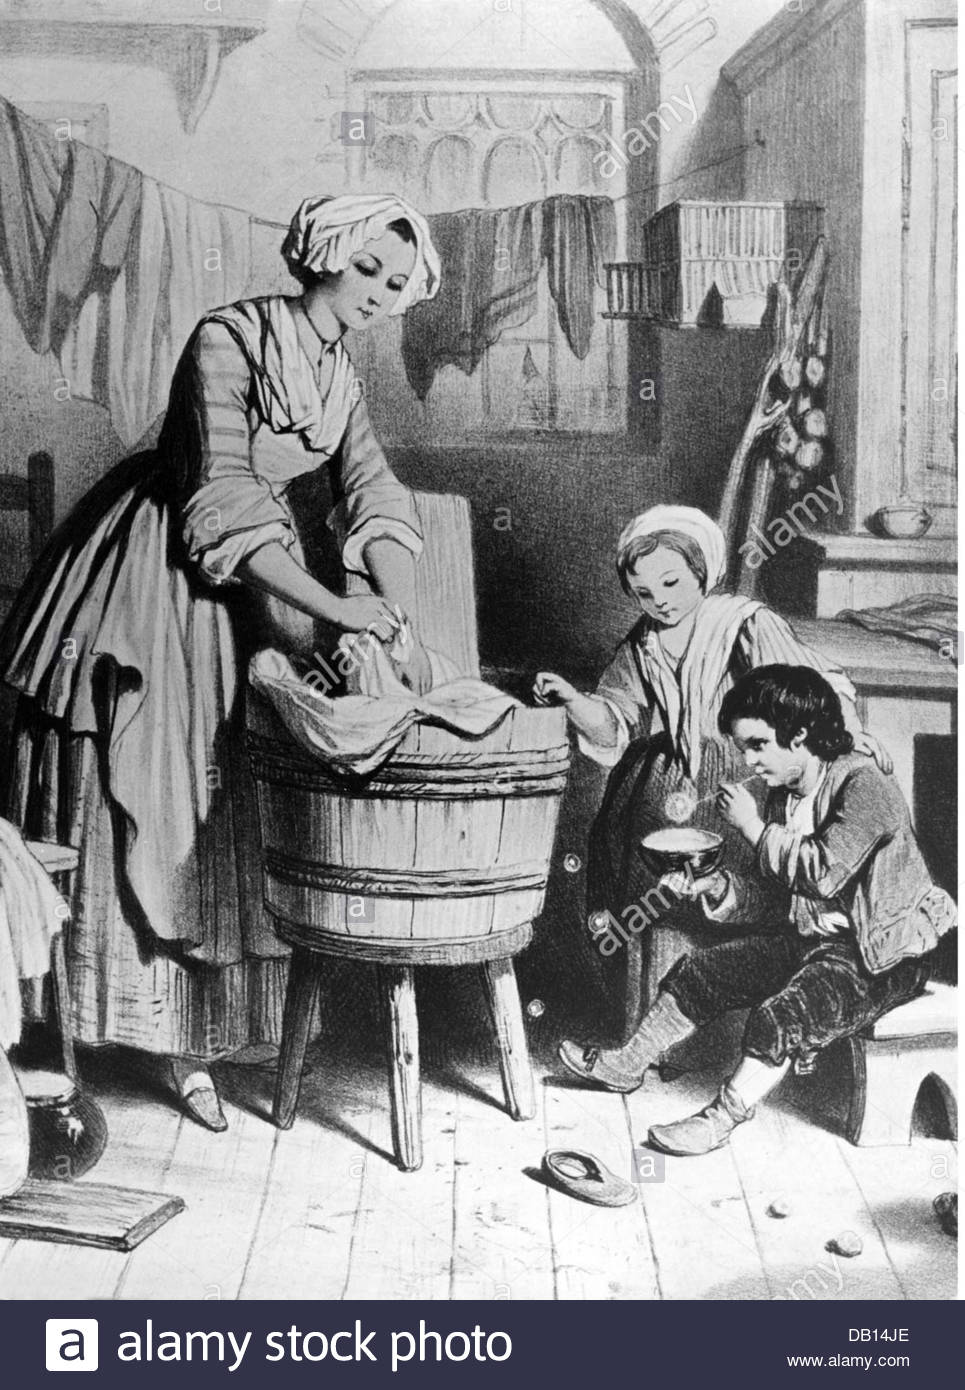 household-washing-woman-washing-the-laundry-in-the-tub-wood-engraving-DB14JE